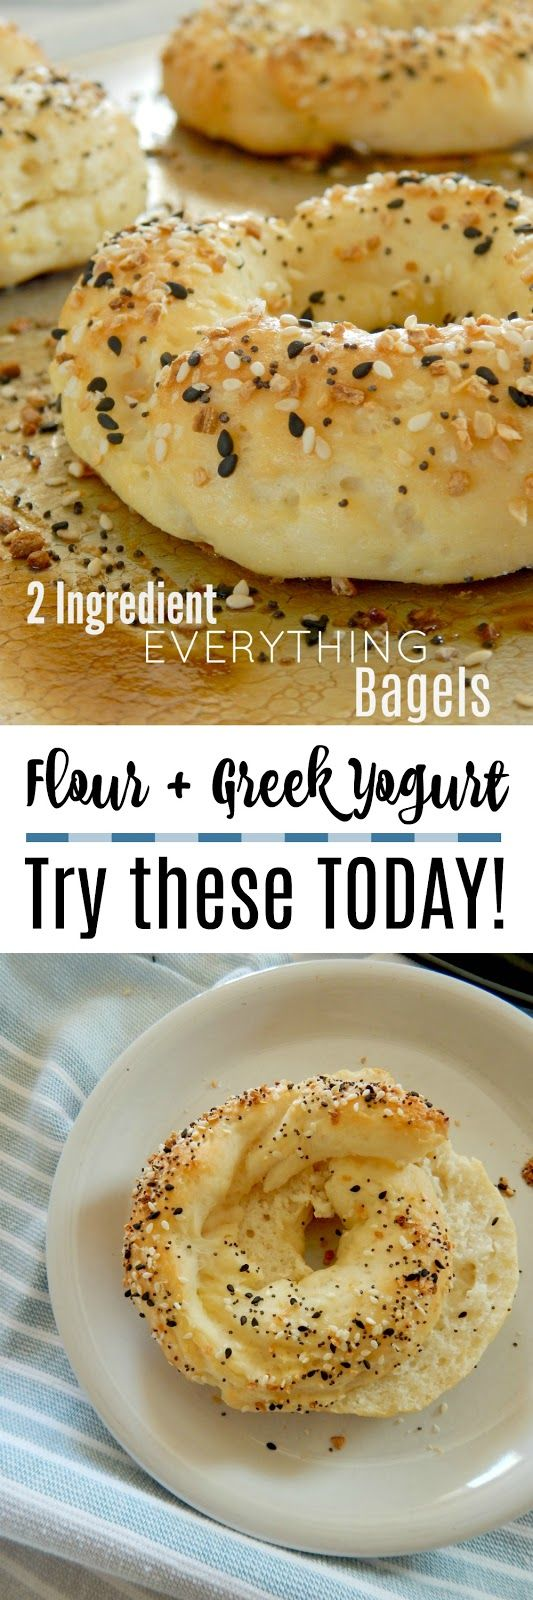 2 Ingredient Everything Bagels...just Greek yogurt and flour make these bagels!  Plus a few extras.  Soft, chewy and most of all, EASY!